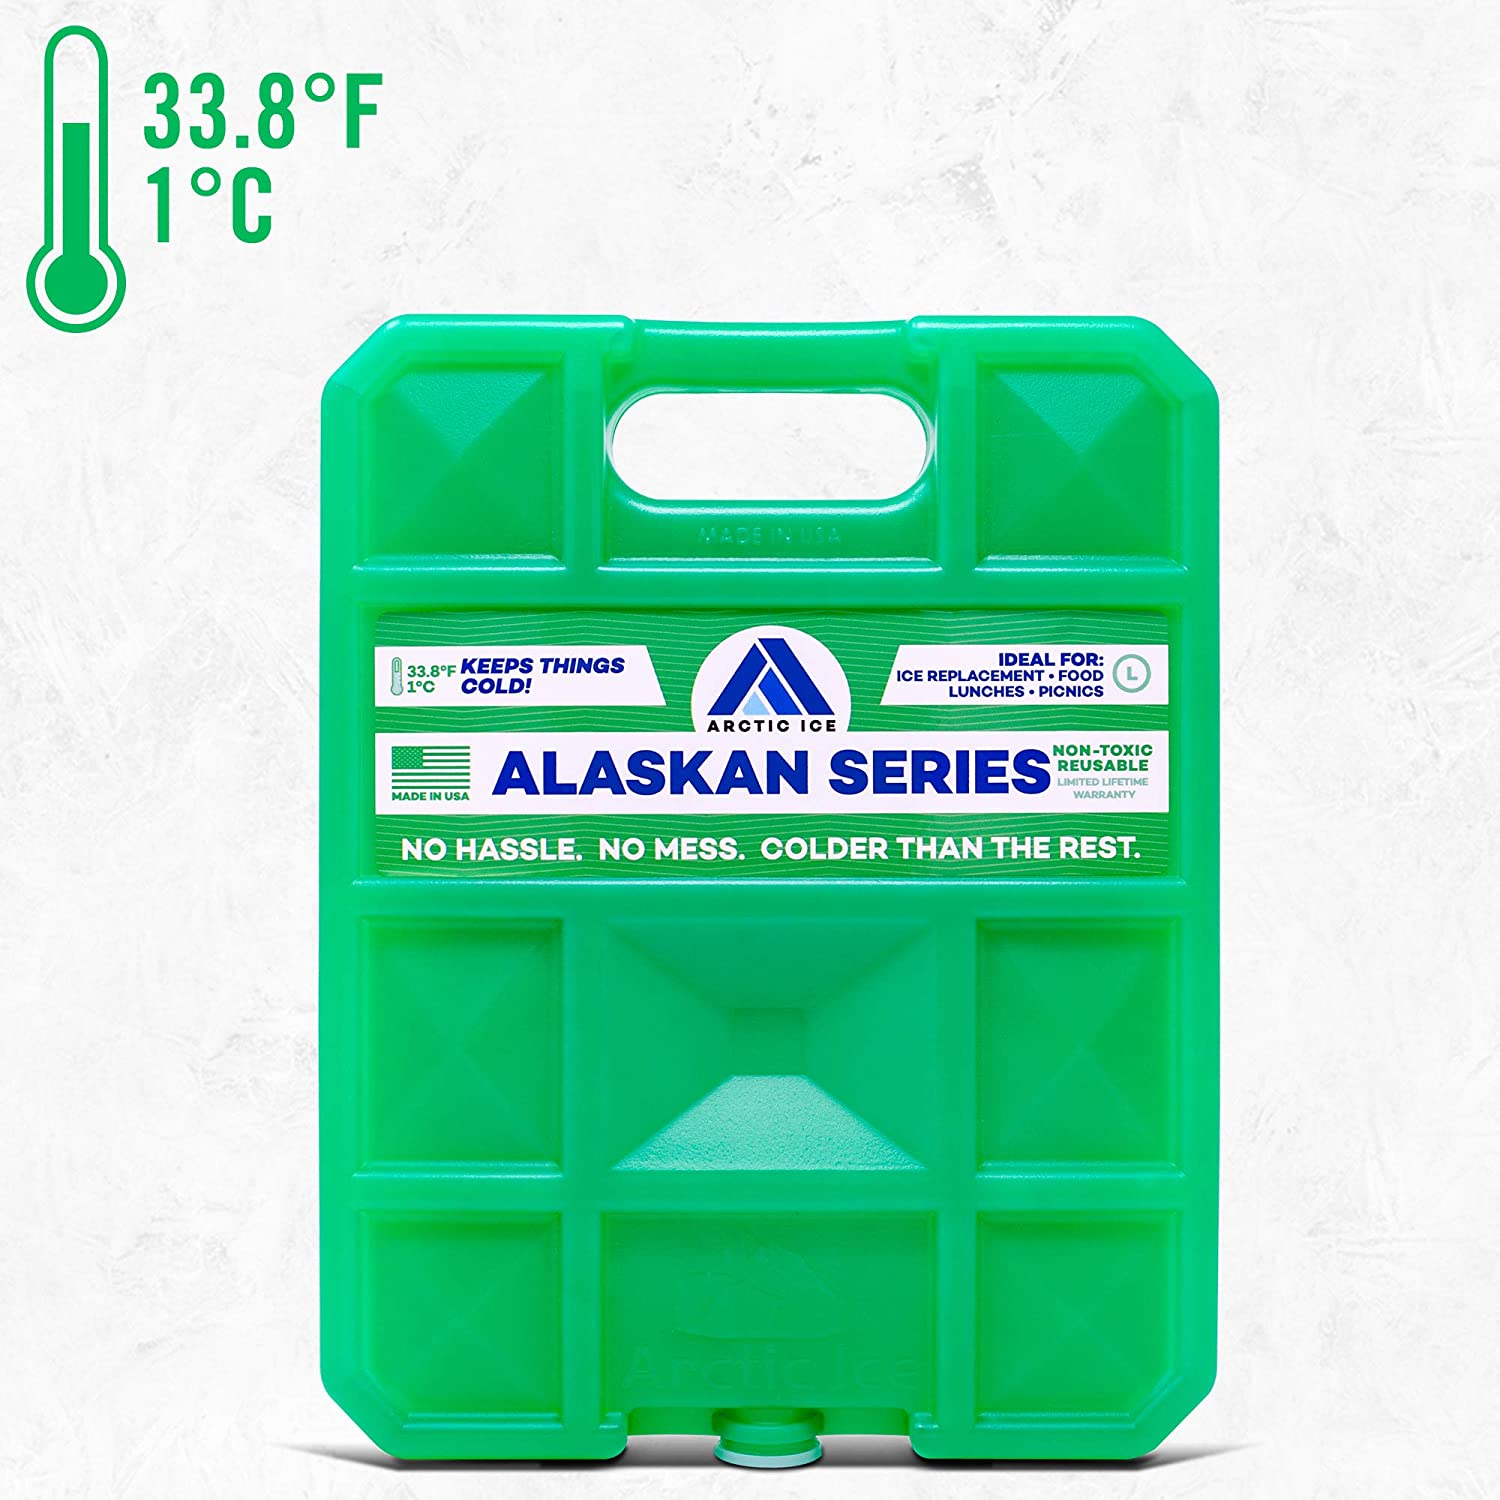 ARCTIC ICE Alaskan Series Freezer Packs, 2.5 lb, Green